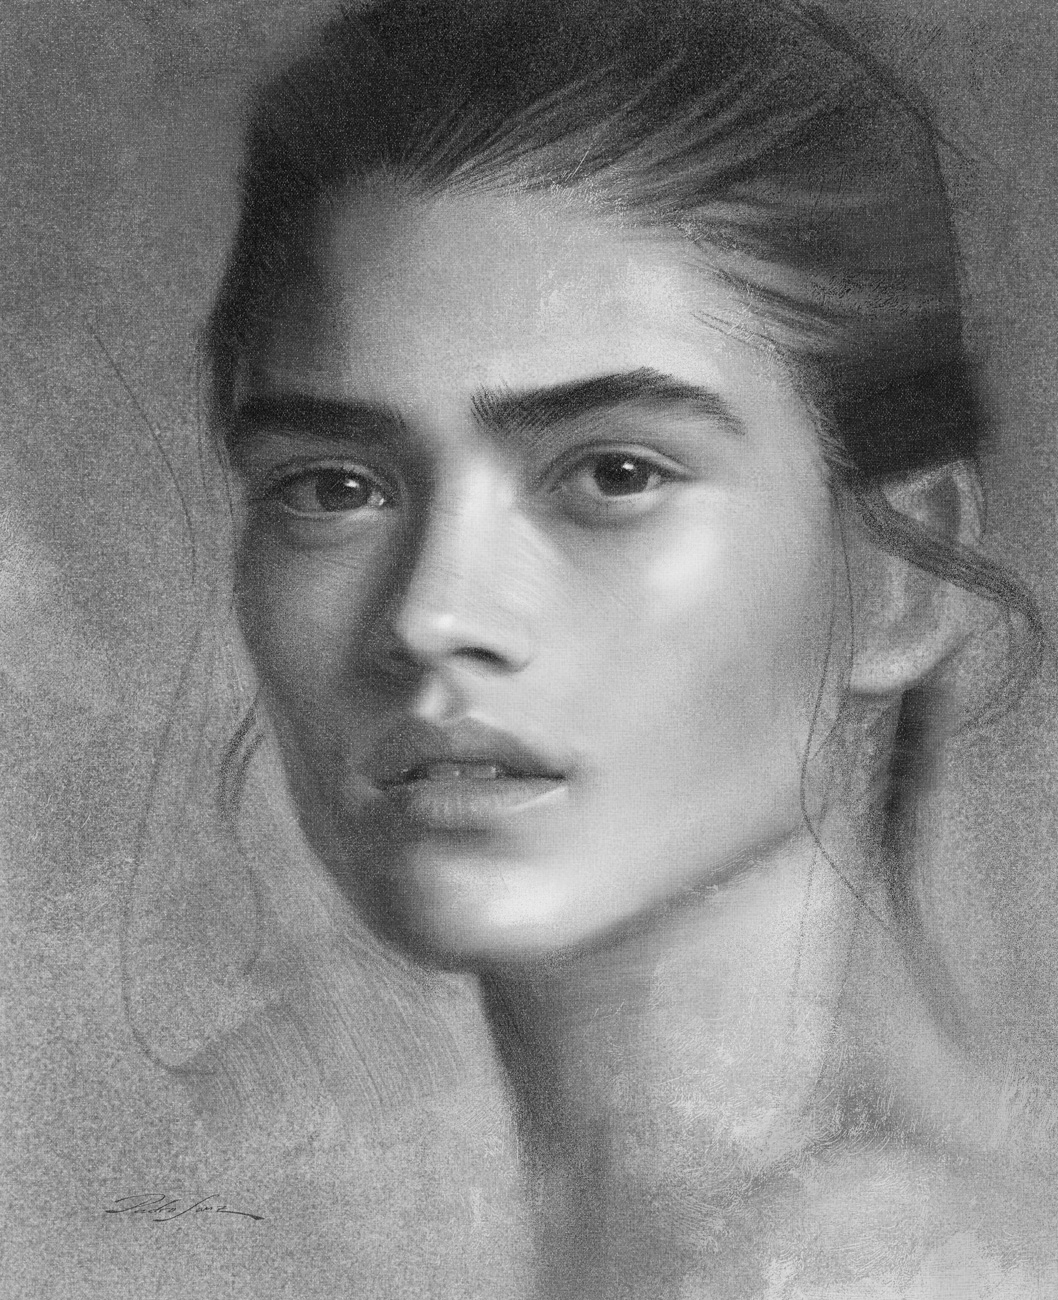 Portrait drawing with organic charcoal